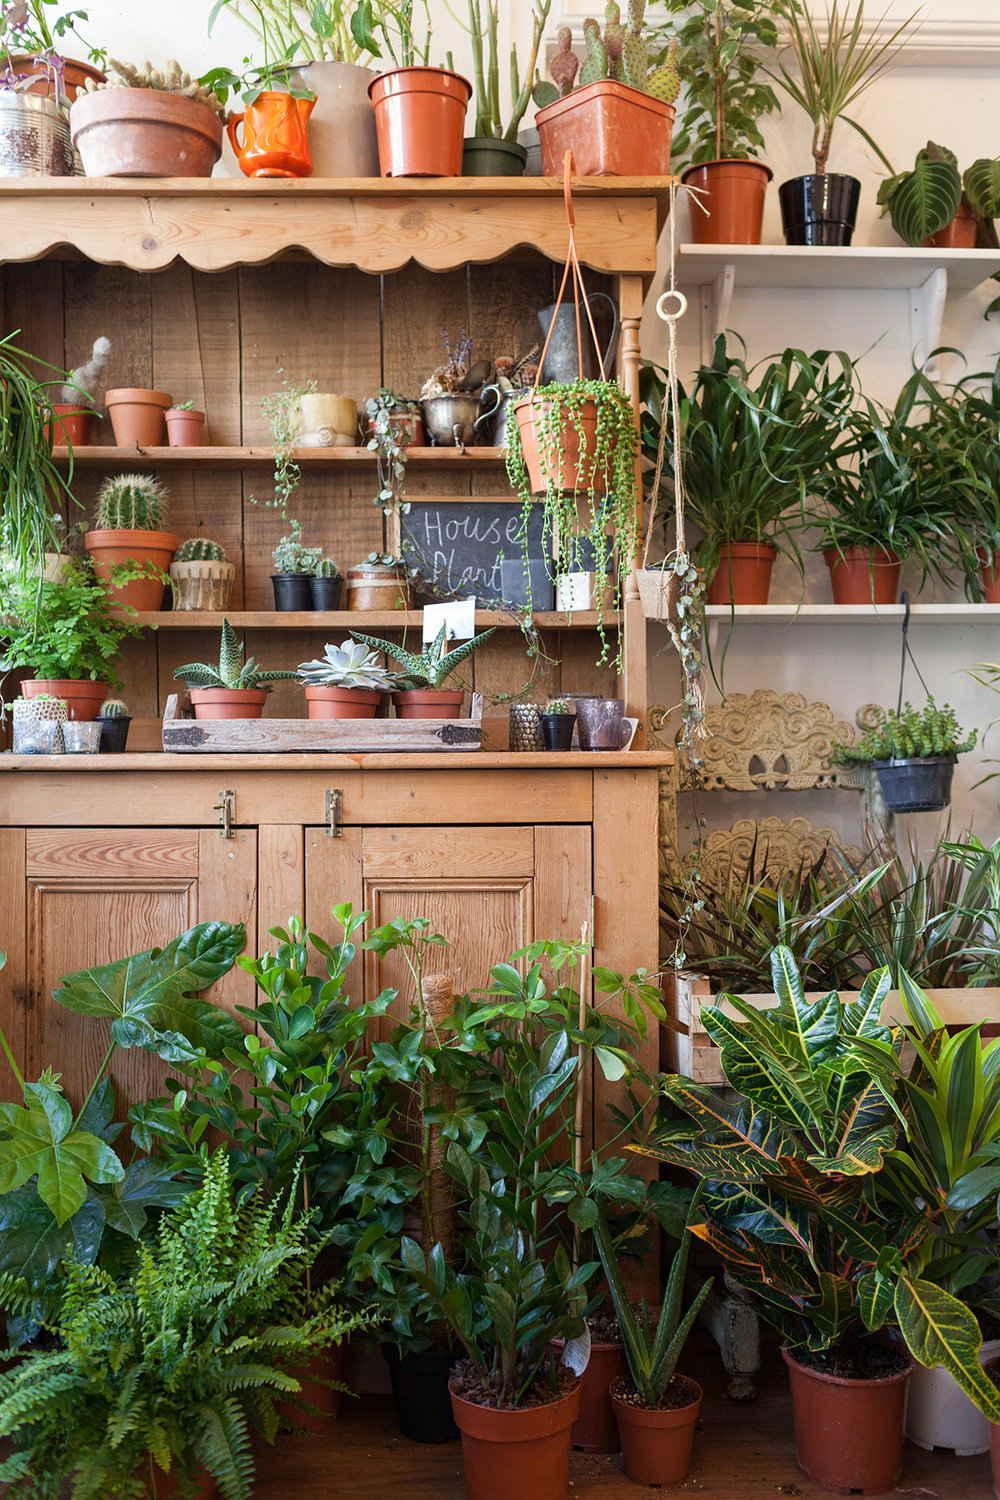 Les Fleurs flower shop featured in Issue 8. Photo: Kasia Fiszer